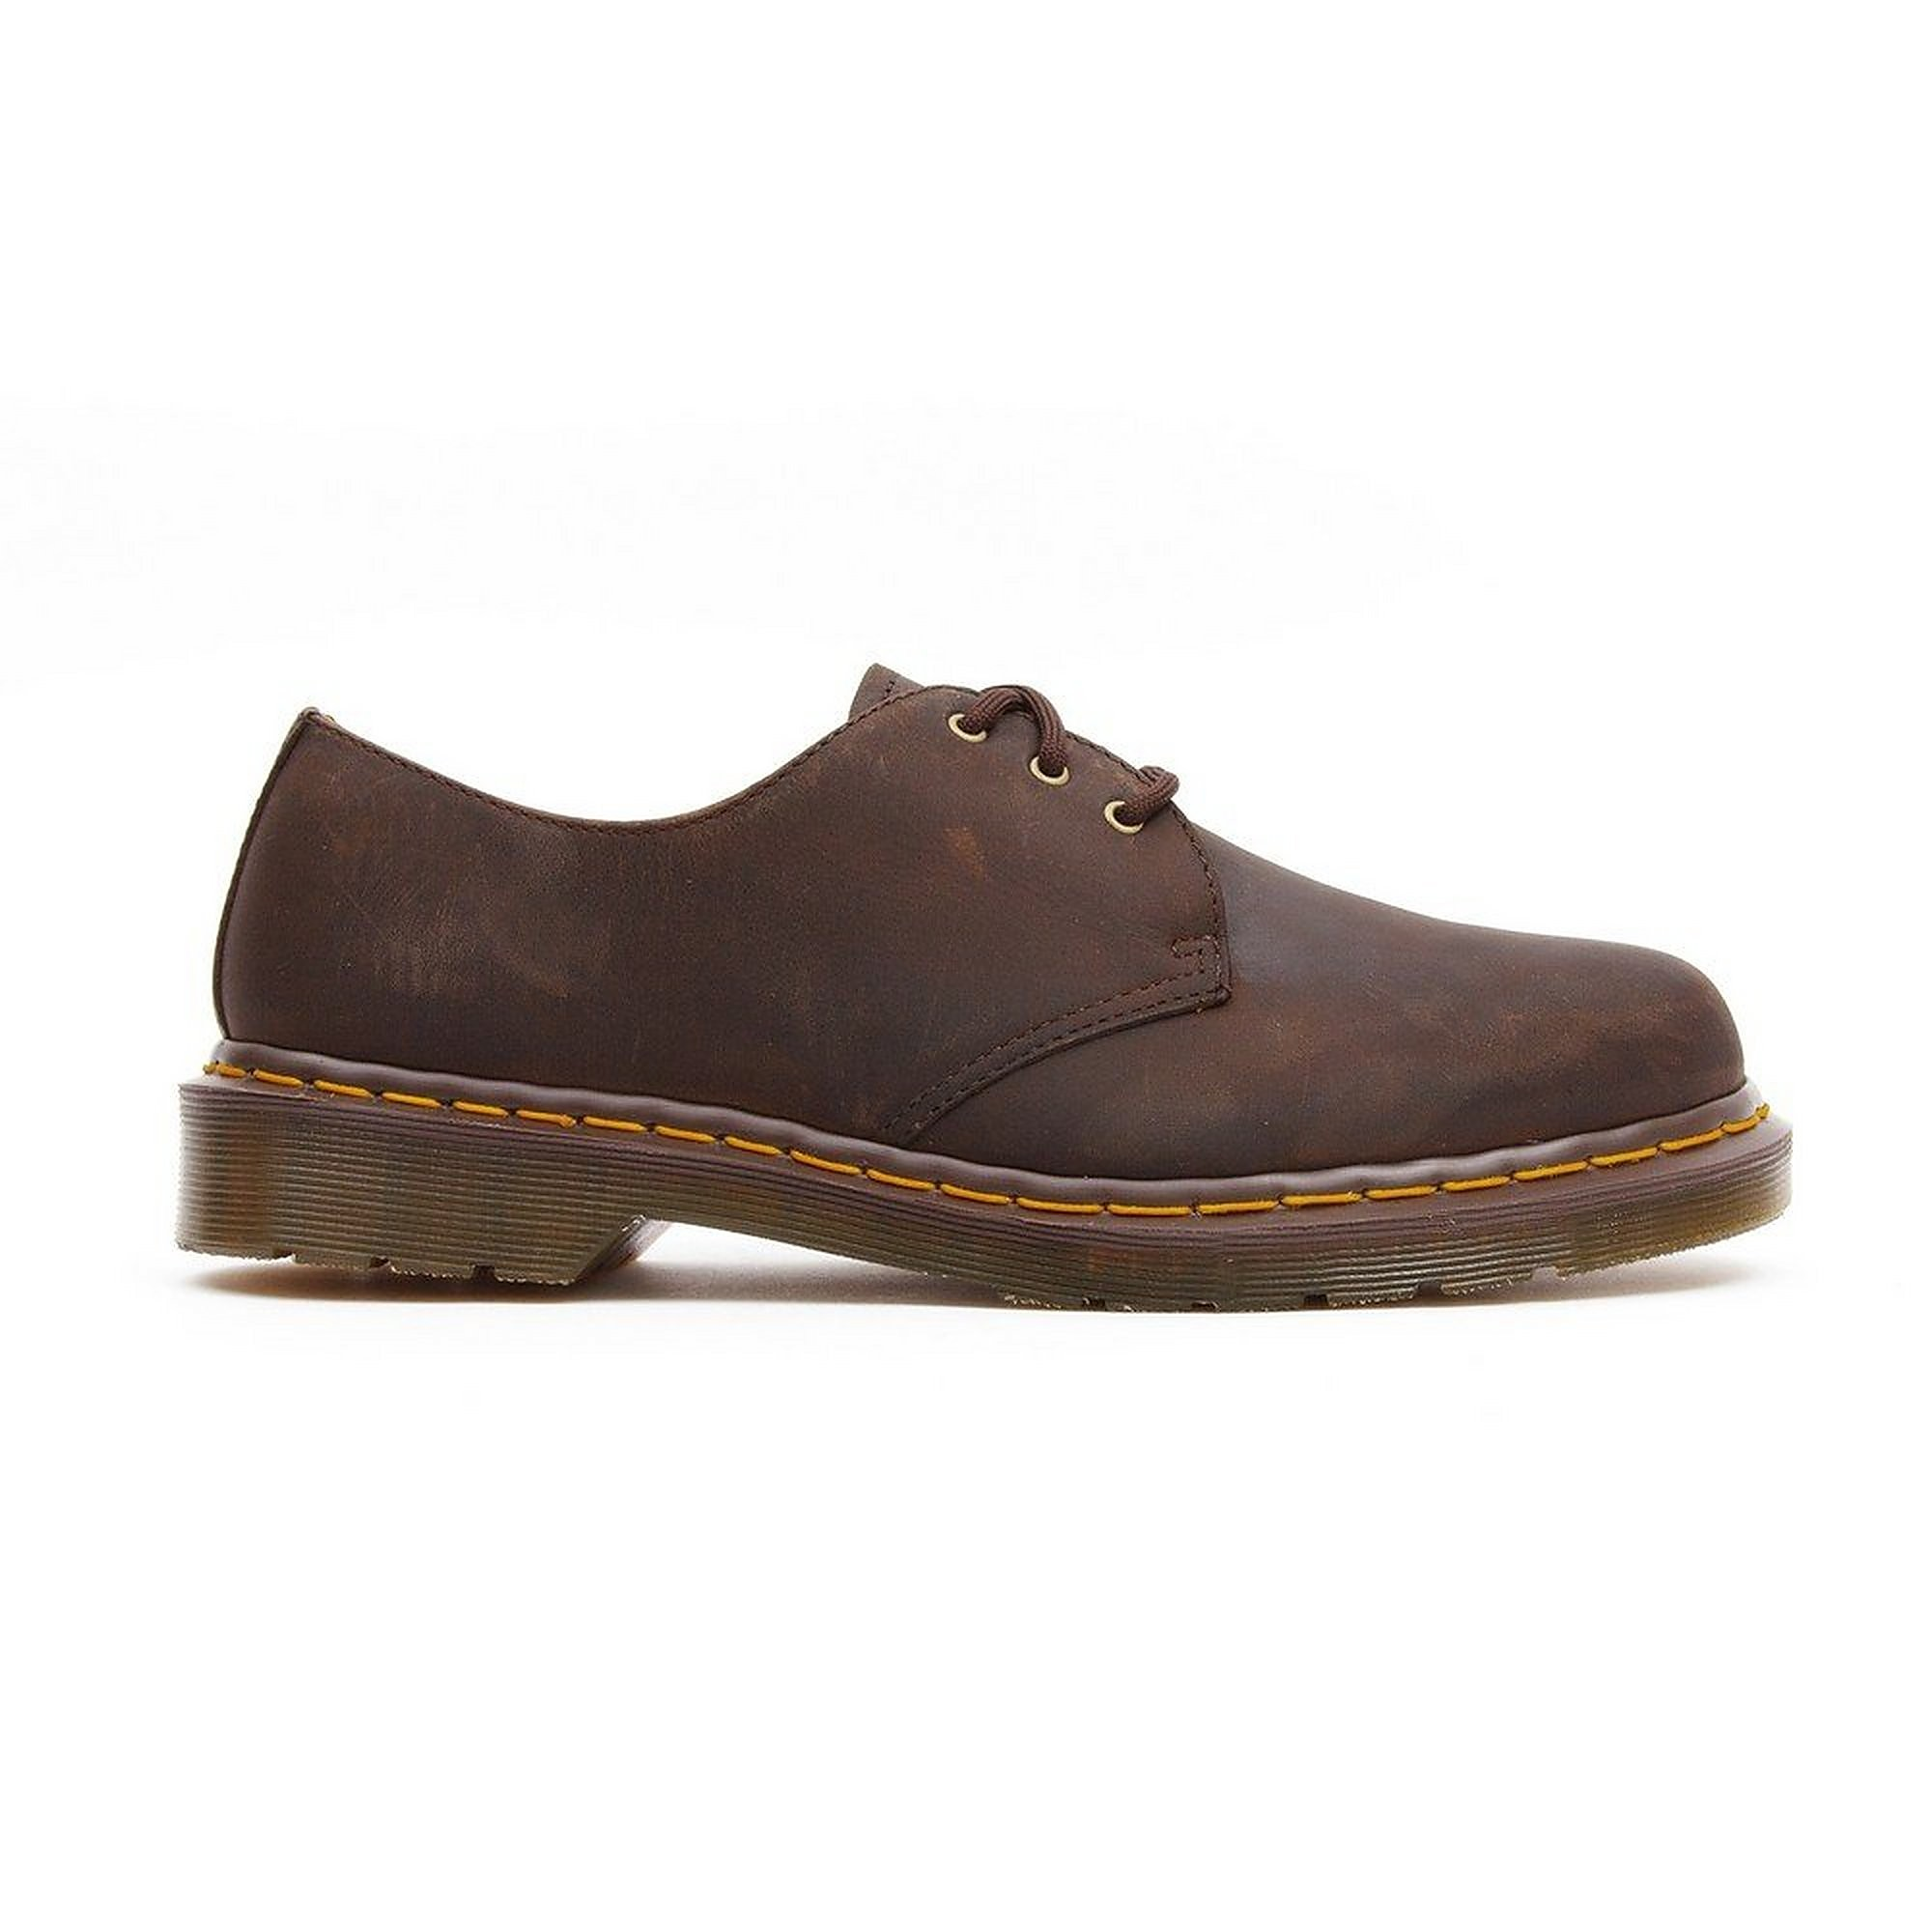 Dr Martens Mens 1461-59 Leather Shoes - Brown